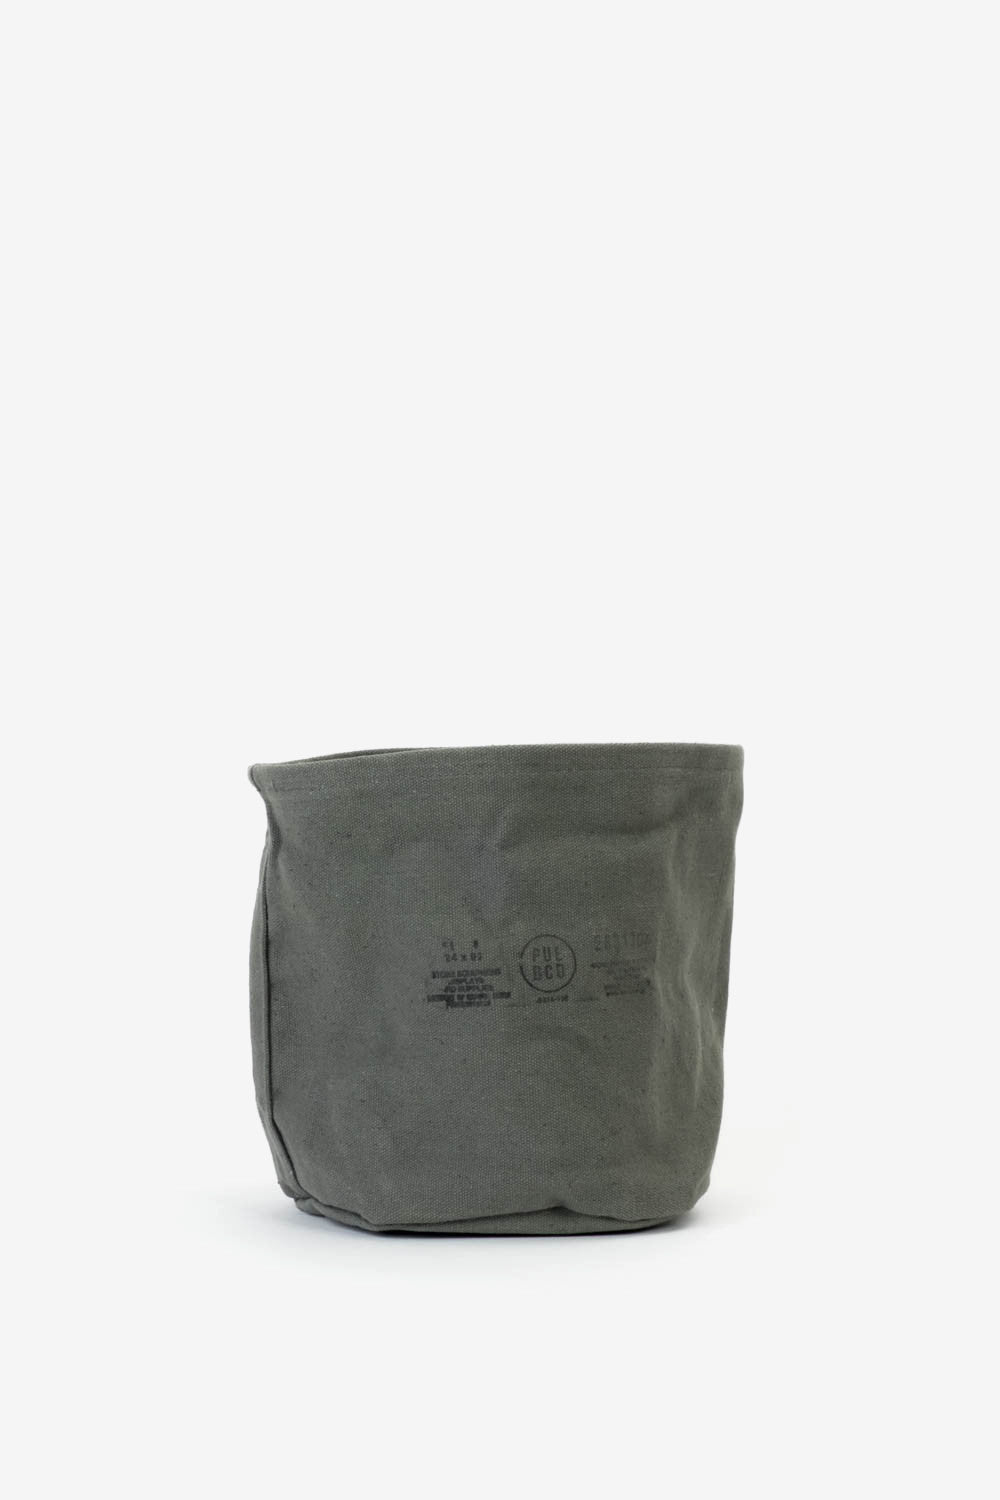 Canvas Pot Cover Green Medium, Interior, Puebco - Six and Sons